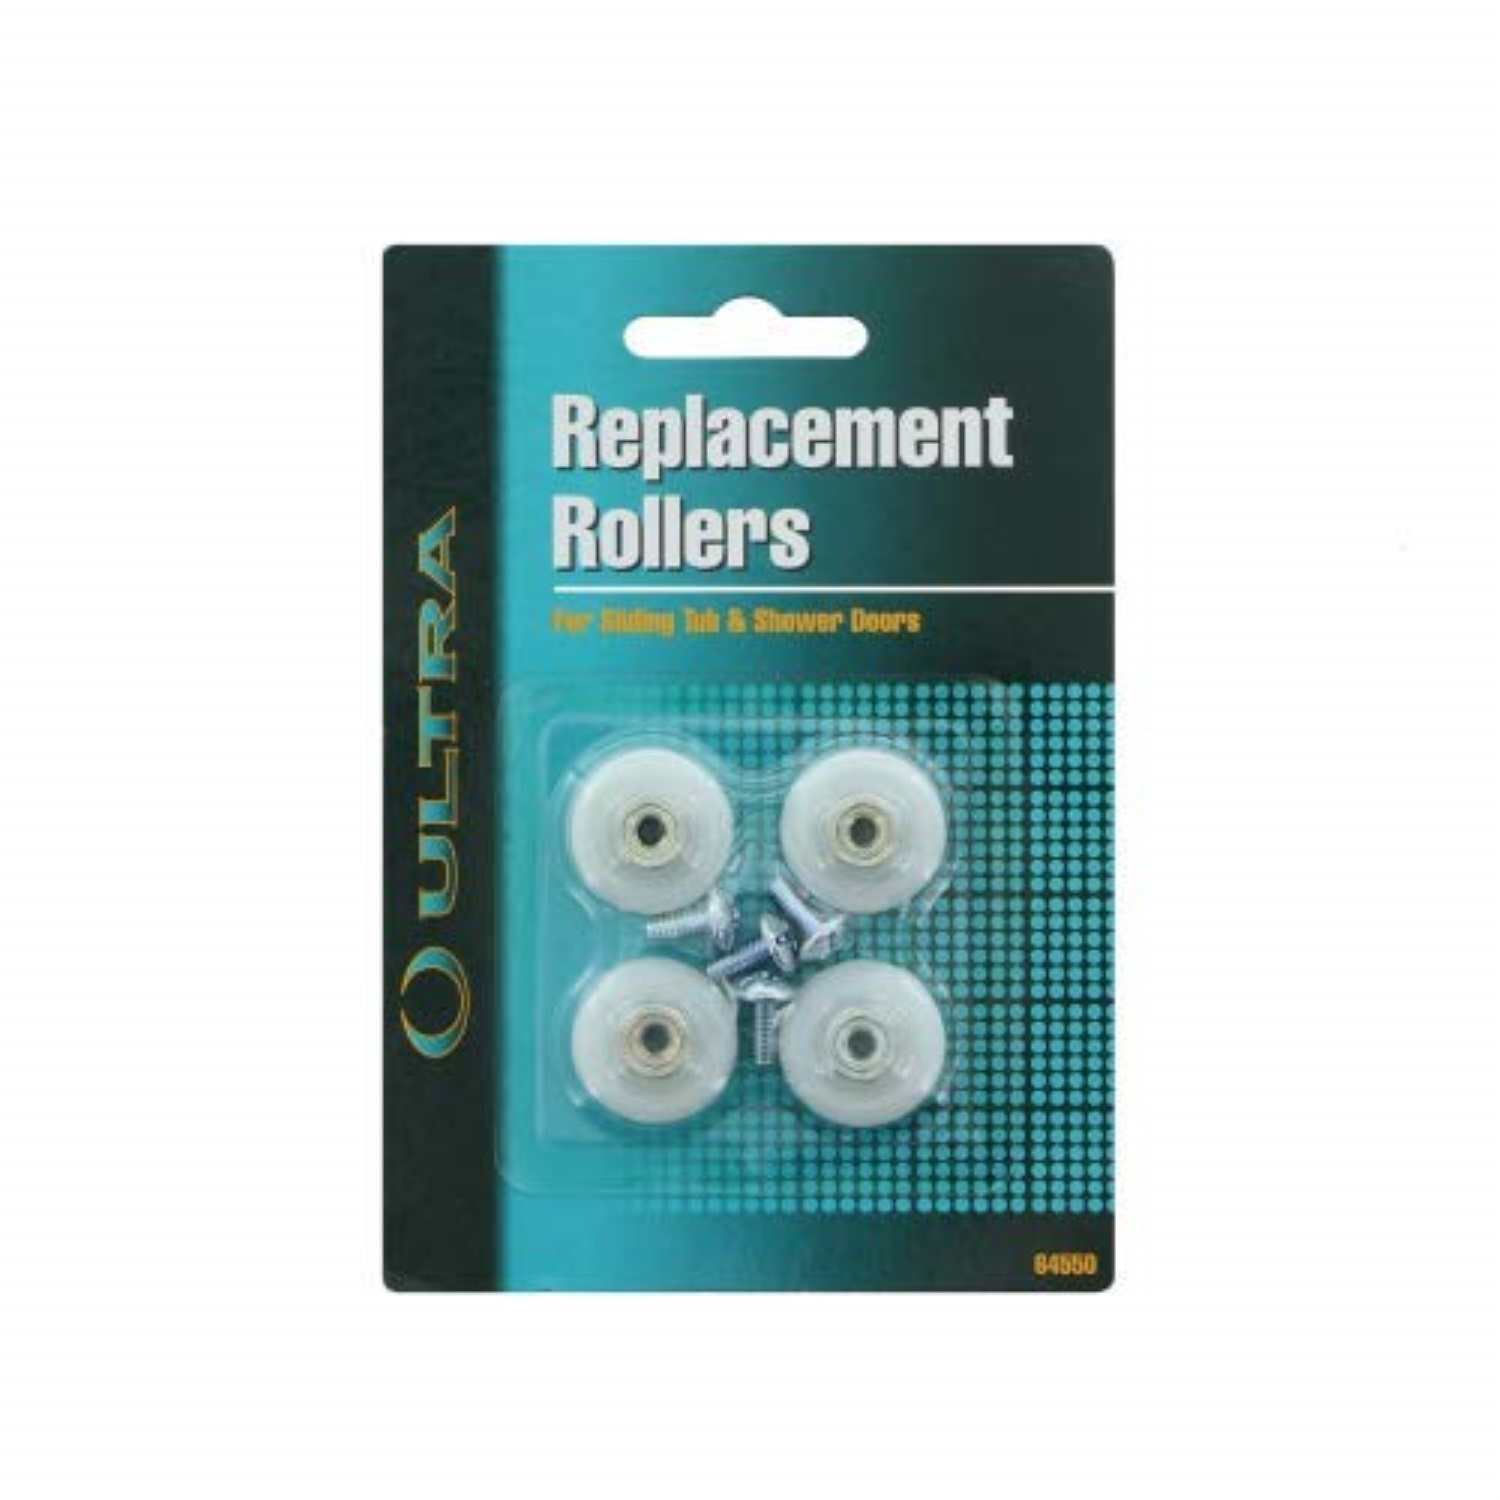 Ultra Sliding Tub and Shower Door Replacement Rollers 2 Packs of 4 Ultra Hardware Products